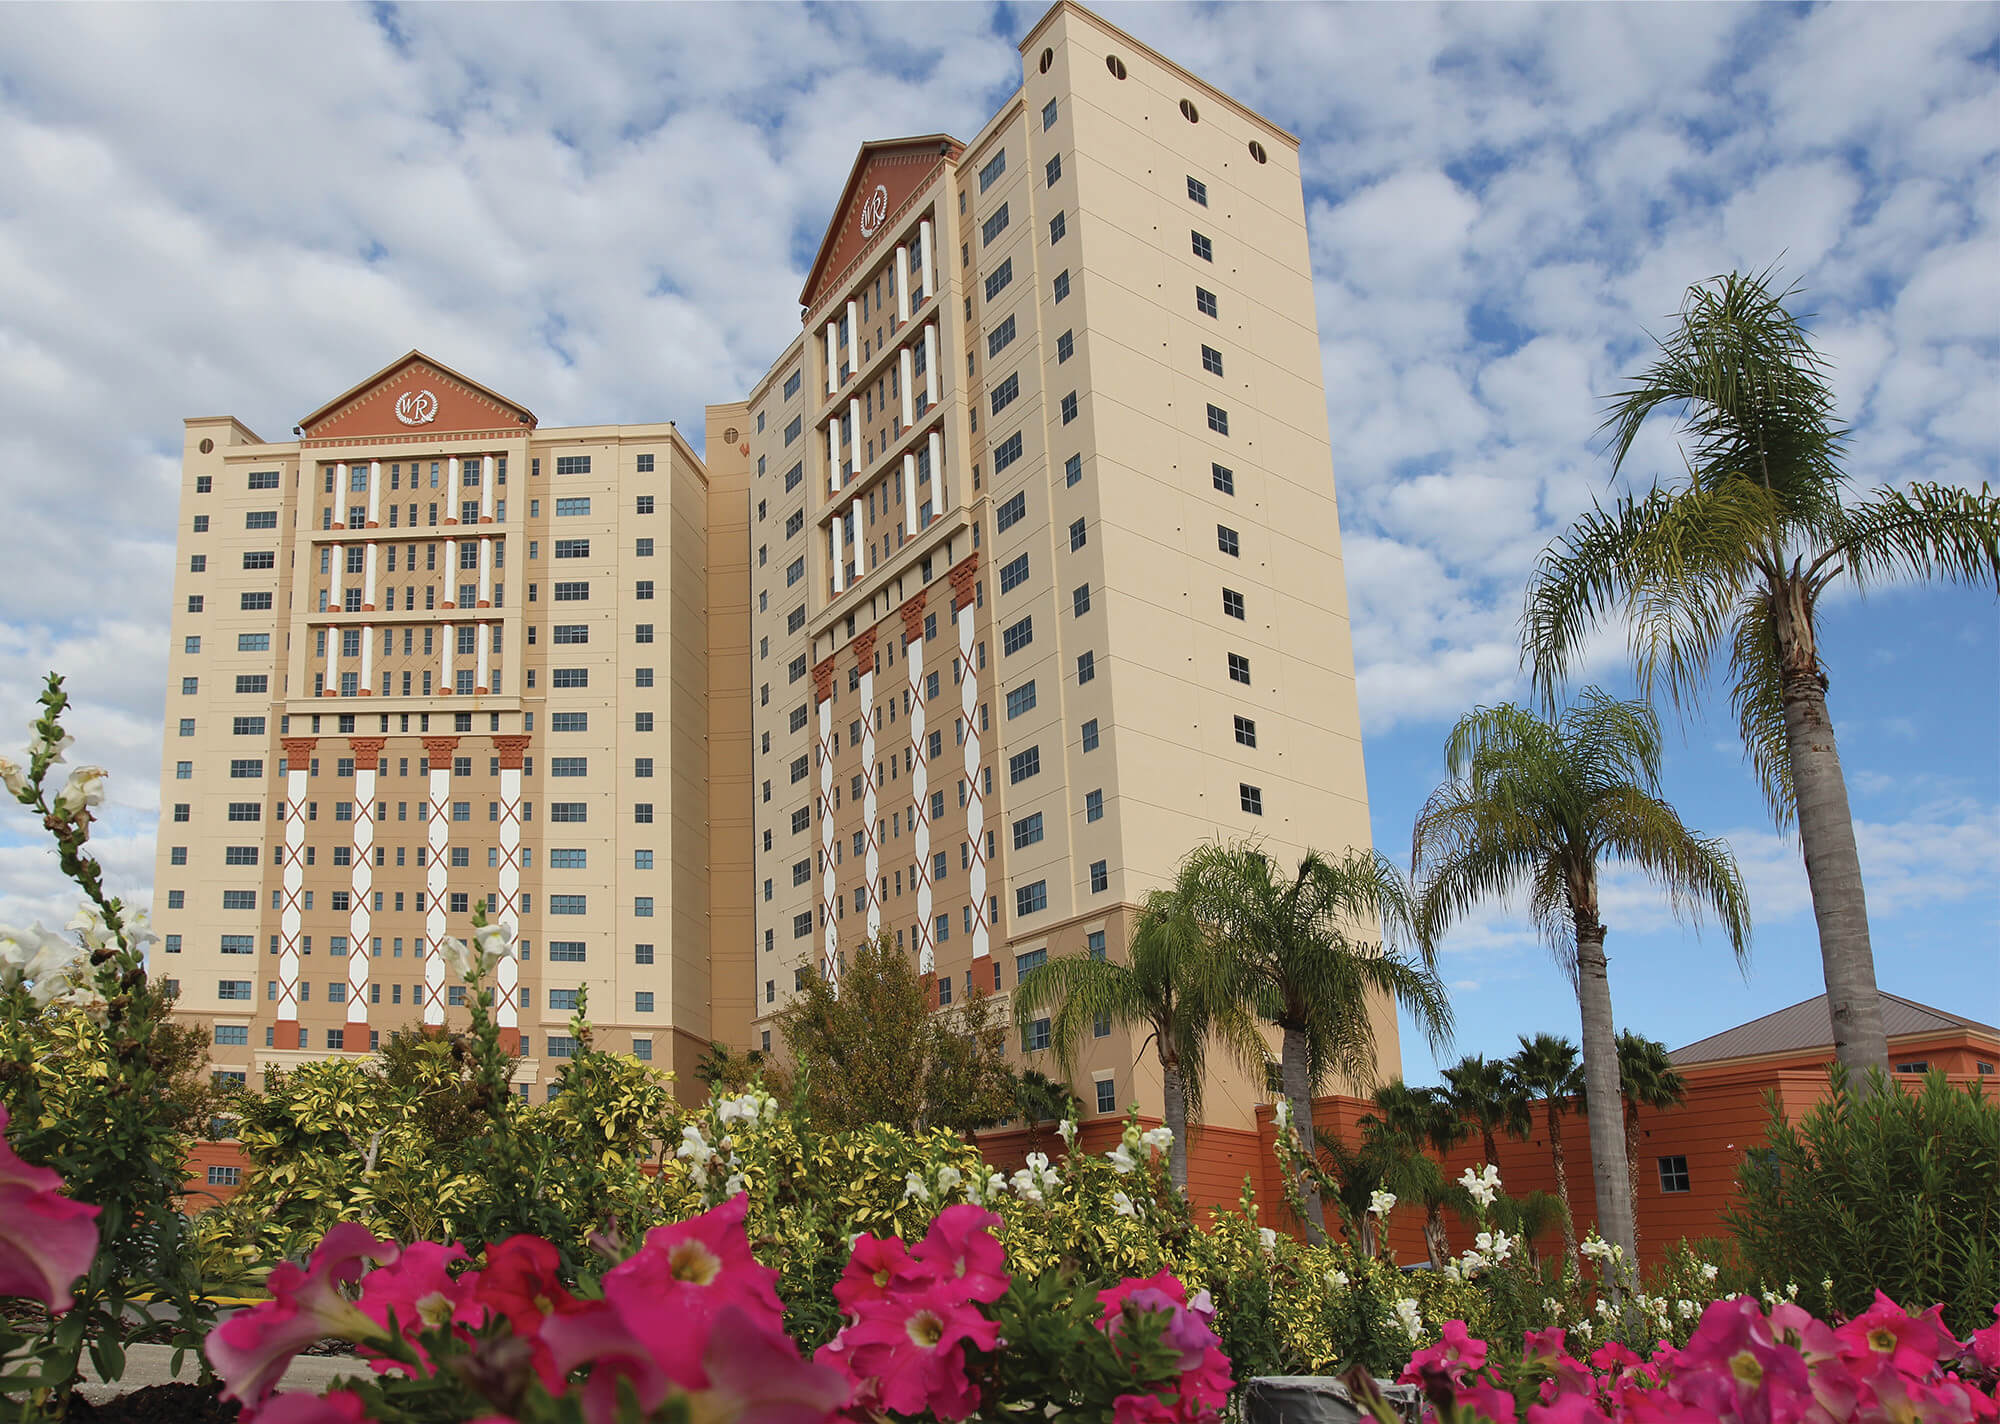 Exterior of our resorts near International Drive Orlando | Westgate Palace Resort | Westgate Resorts